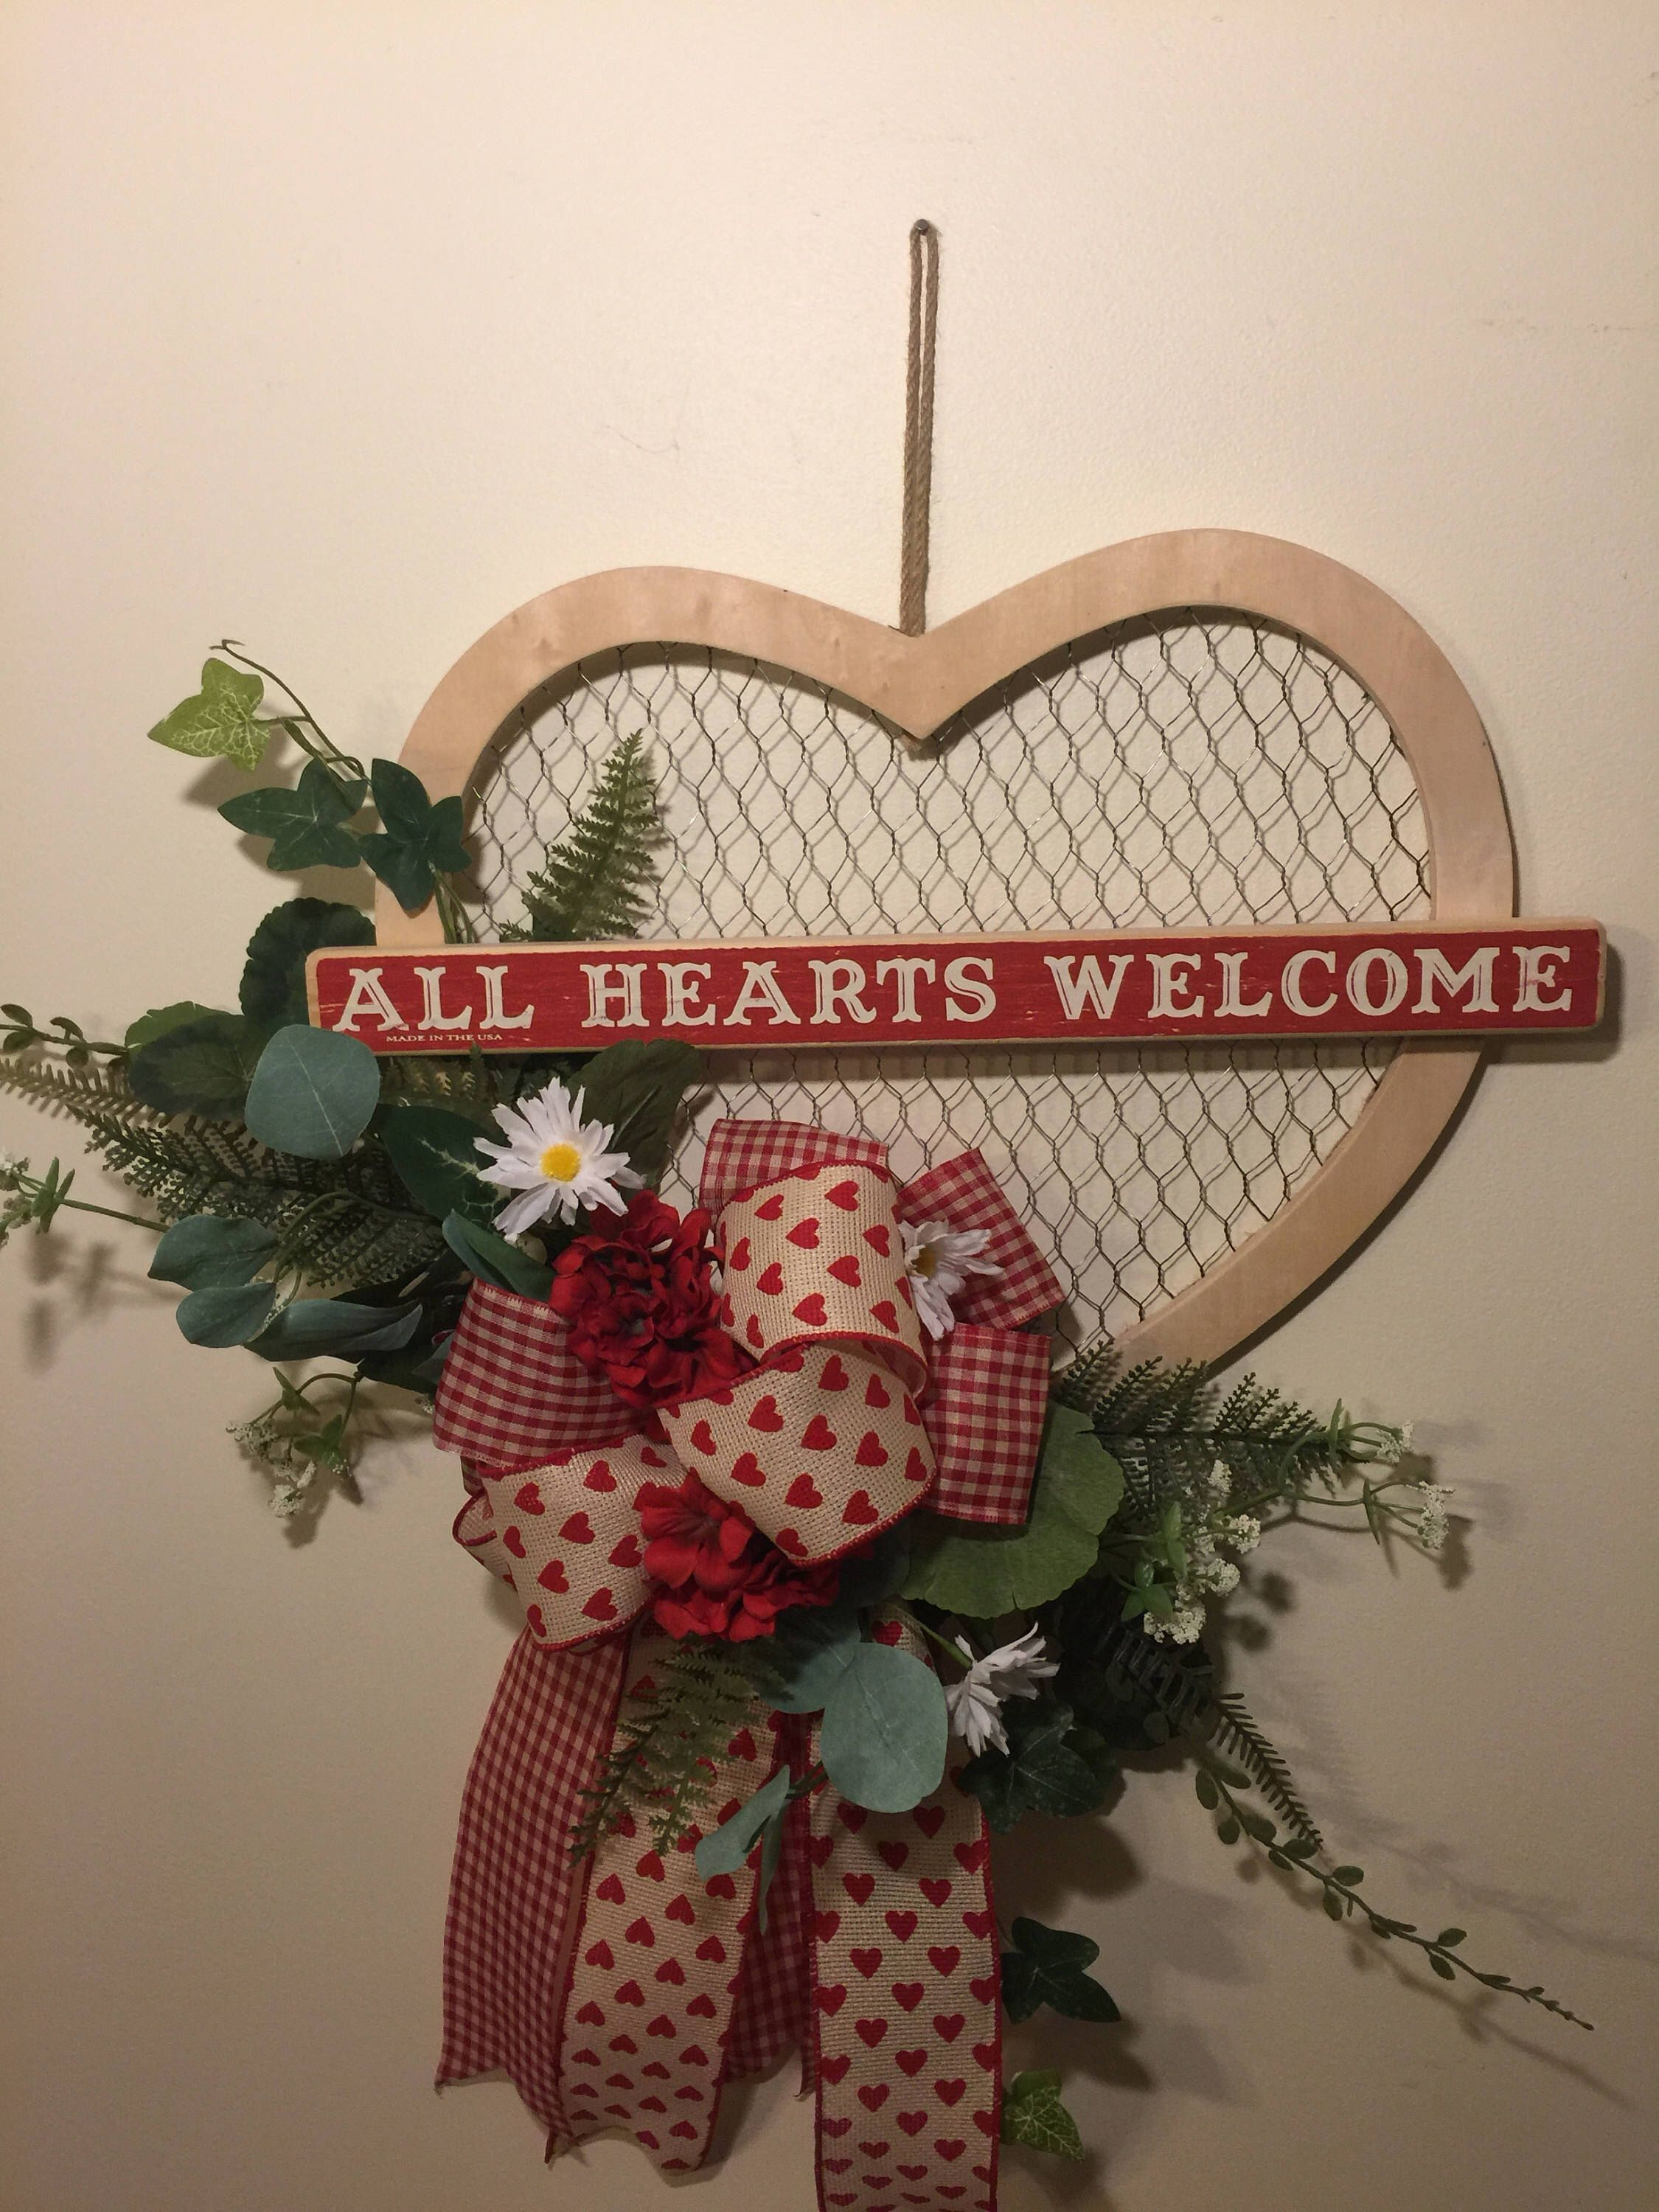 Awesome Valentines Front Door Decor Ideas When Planting Trees Around Your House Valentine Decorations Diy Valentines Decorations Valentines Day Decorations